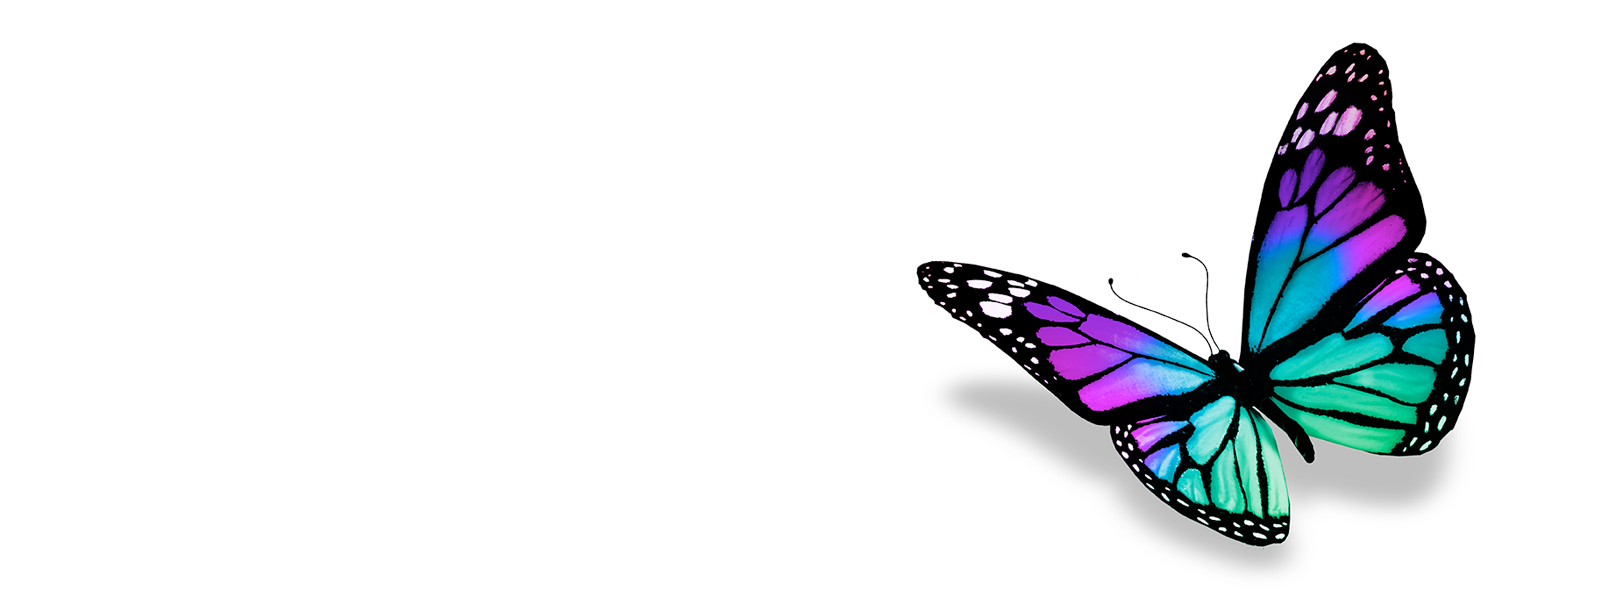 ovnp_headerimages_butterfly4